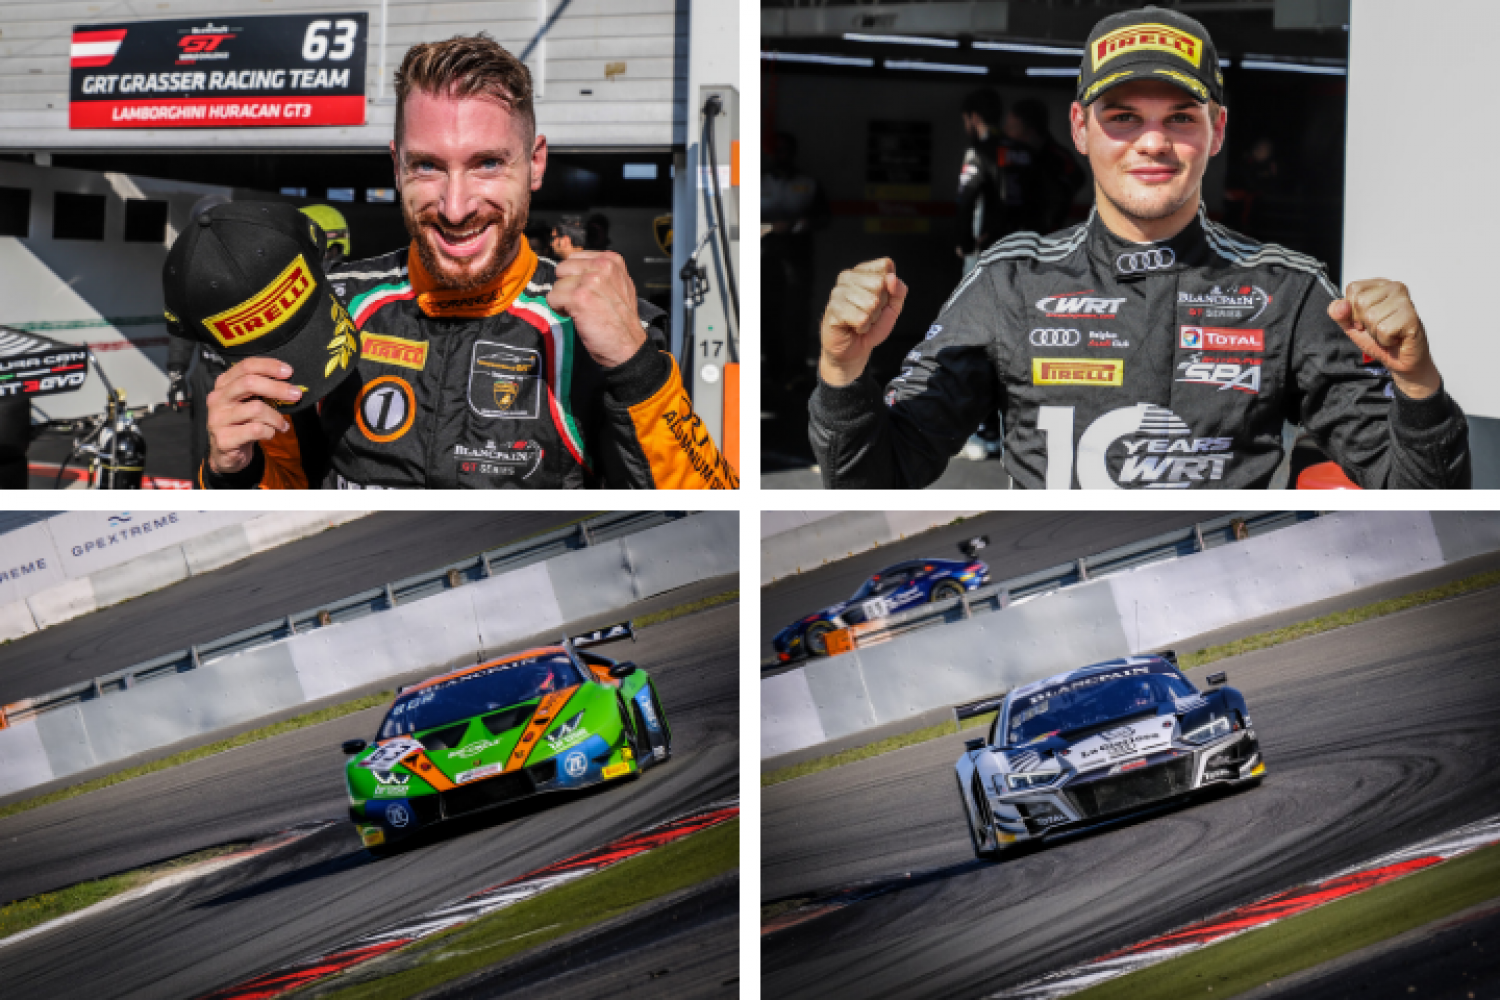 Bortolotti and Vanthoor take pole positions as title battle heats up at Nürburgring